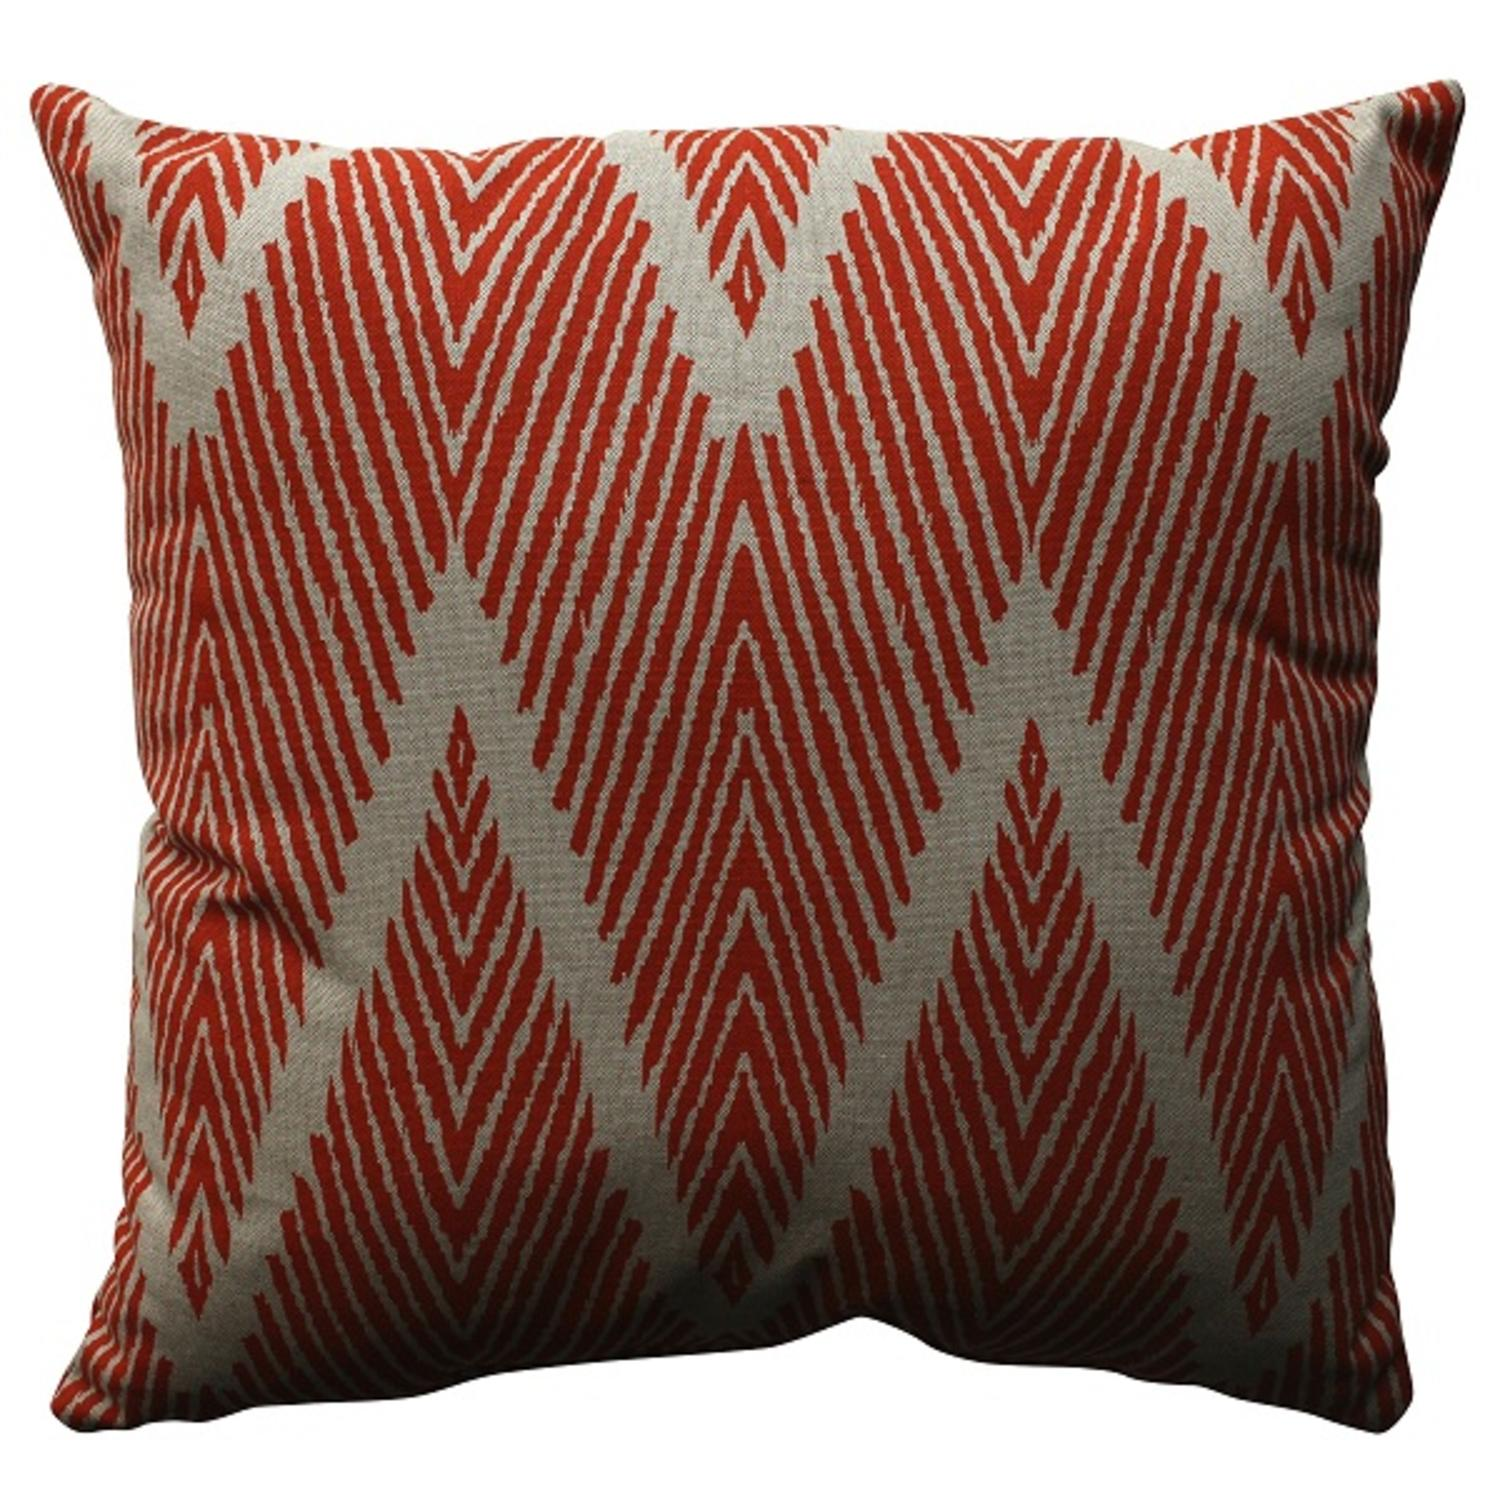 "18"" Orange Zig Zag Zebra Print Decorative Throw Pillow"